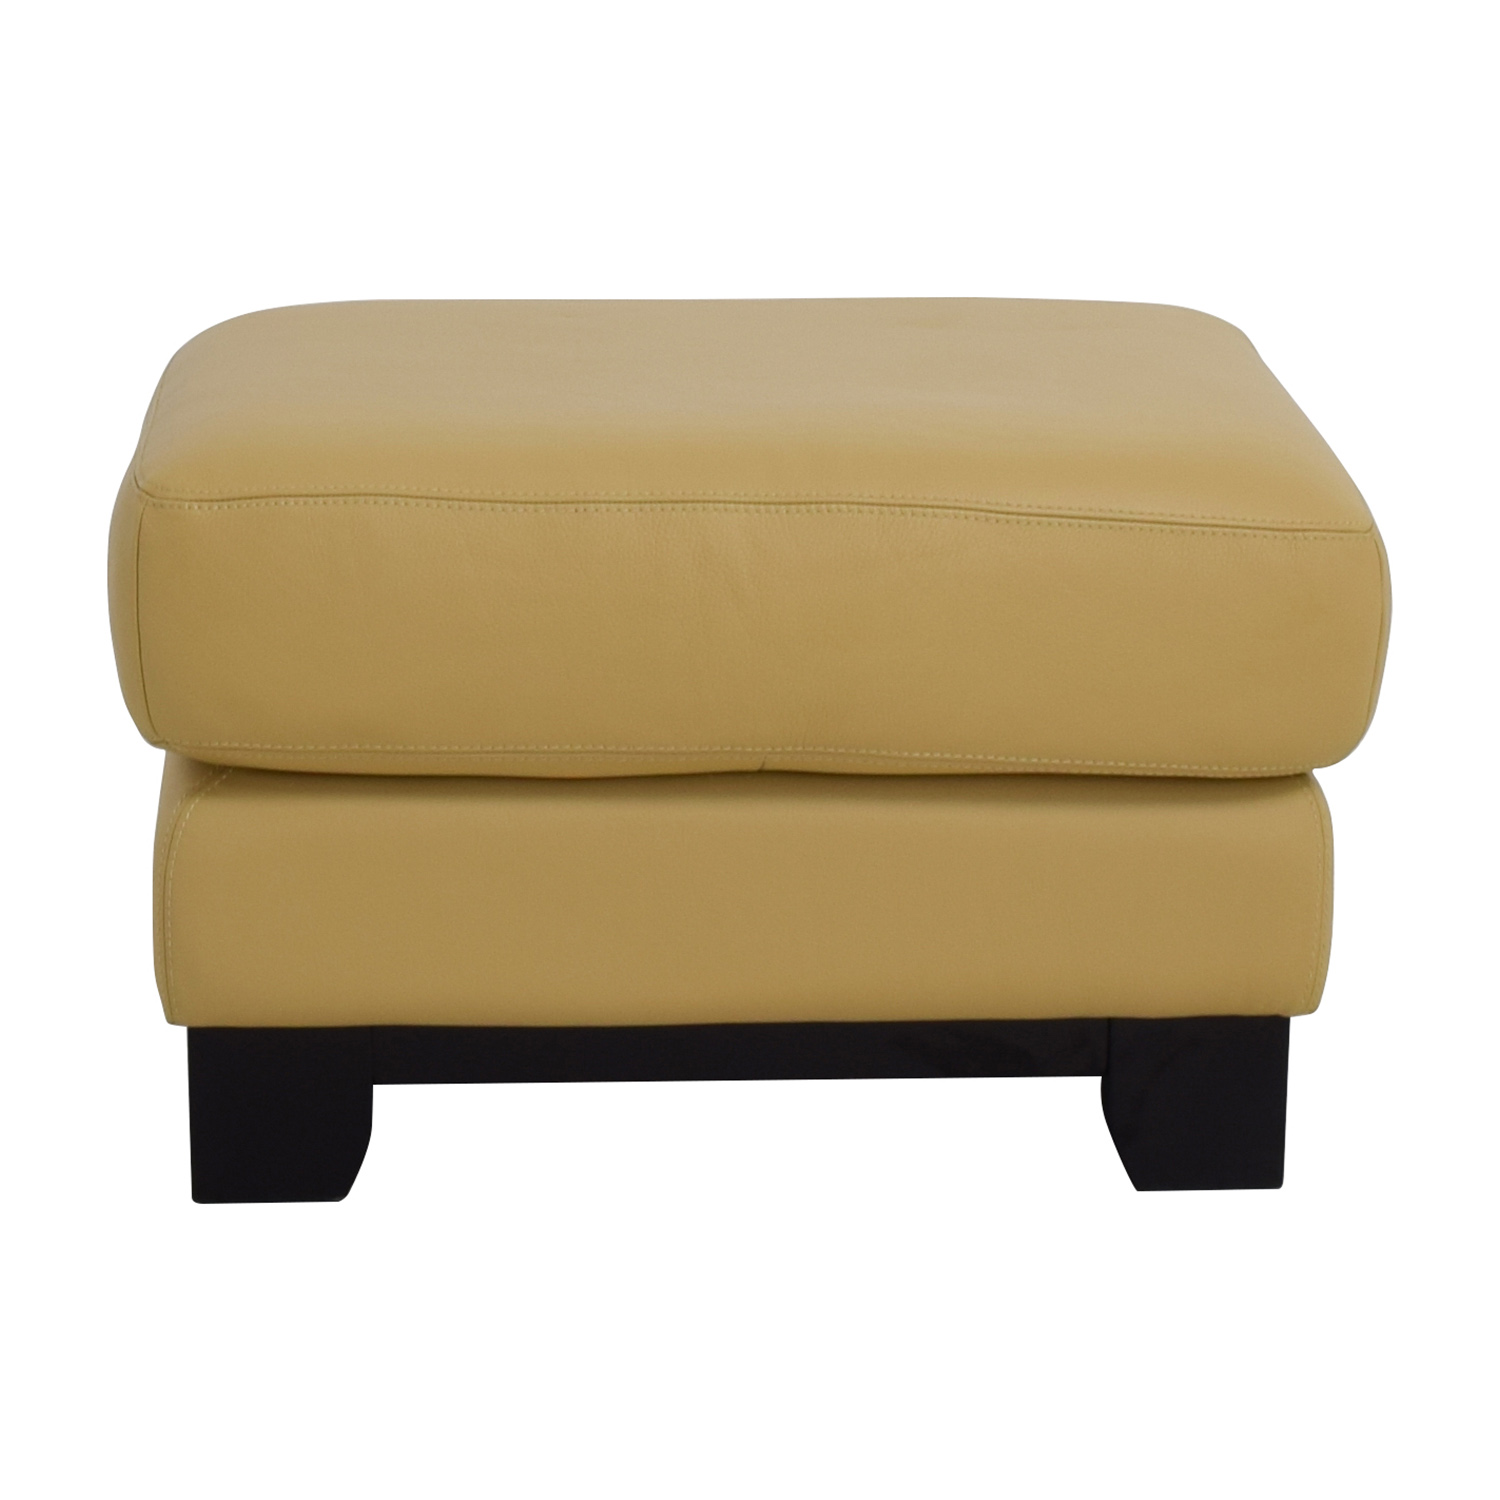 buy Chateau D'Ax USA Beige Leather Ottoman Chateau D'Ax USA